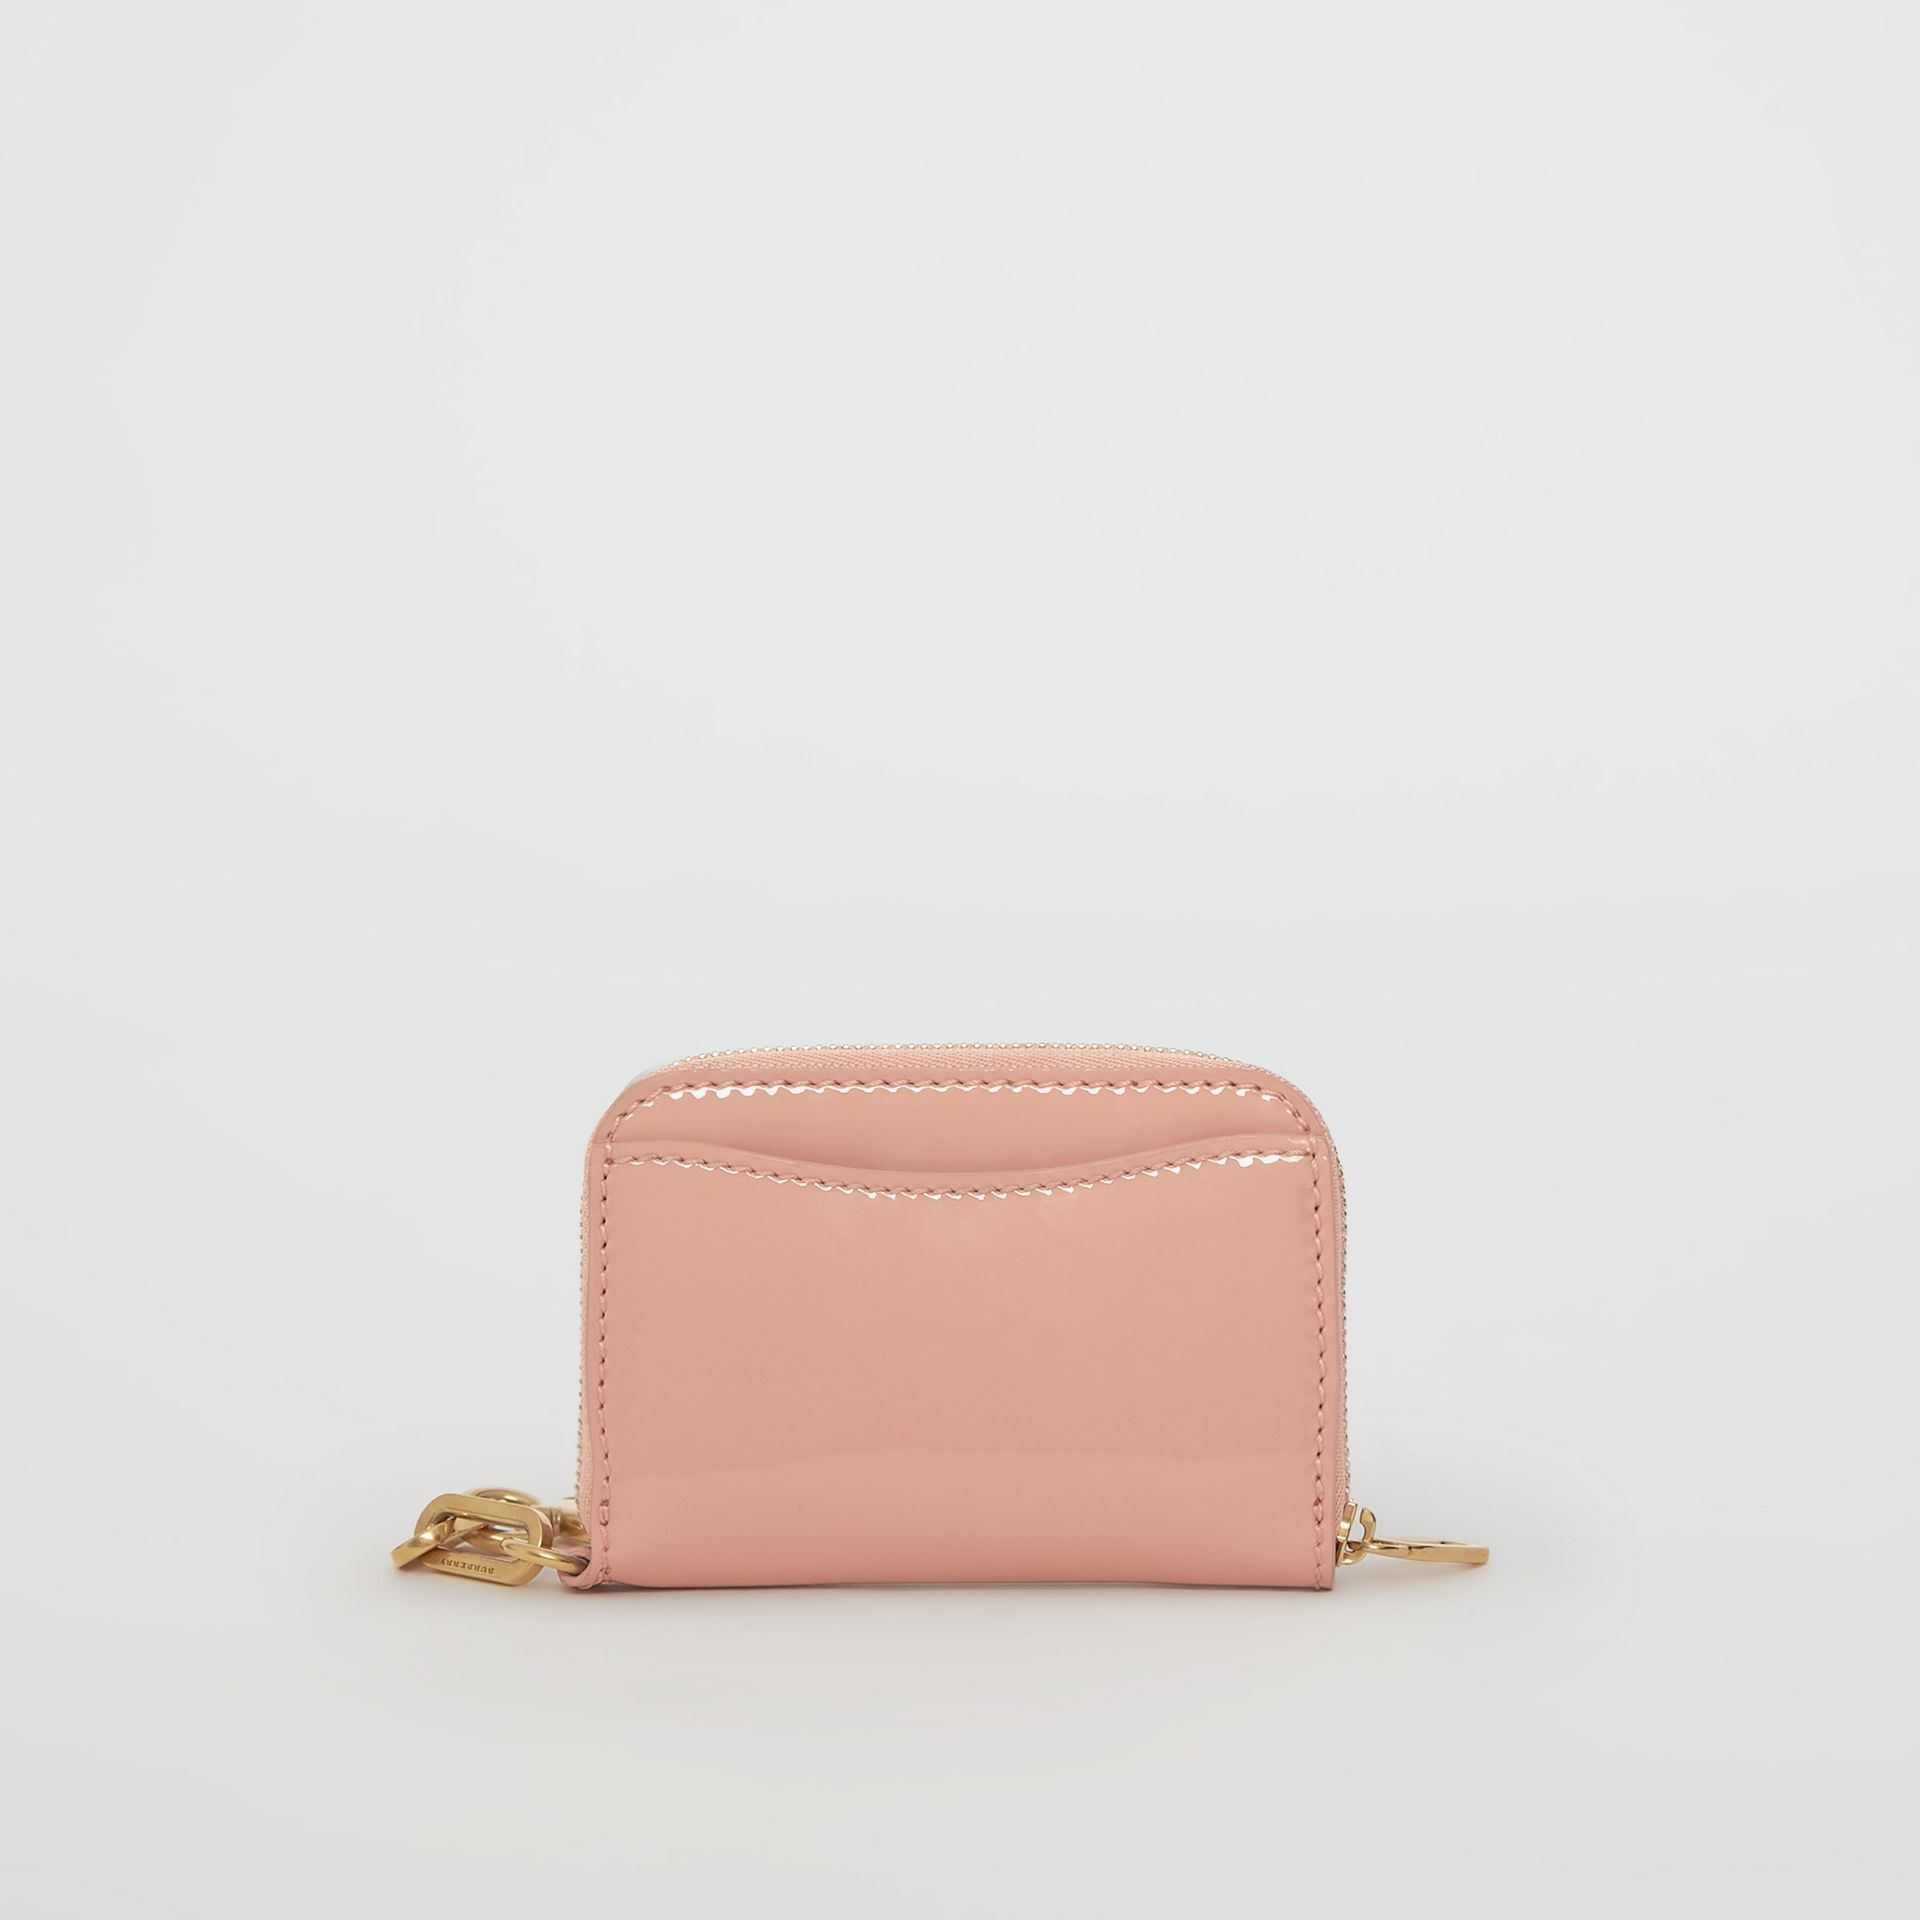 Link Detail Patent Leather Ziparound Wallet in Pale Fawn Pink - Women | Burberry United Kingdom - gallery image 5